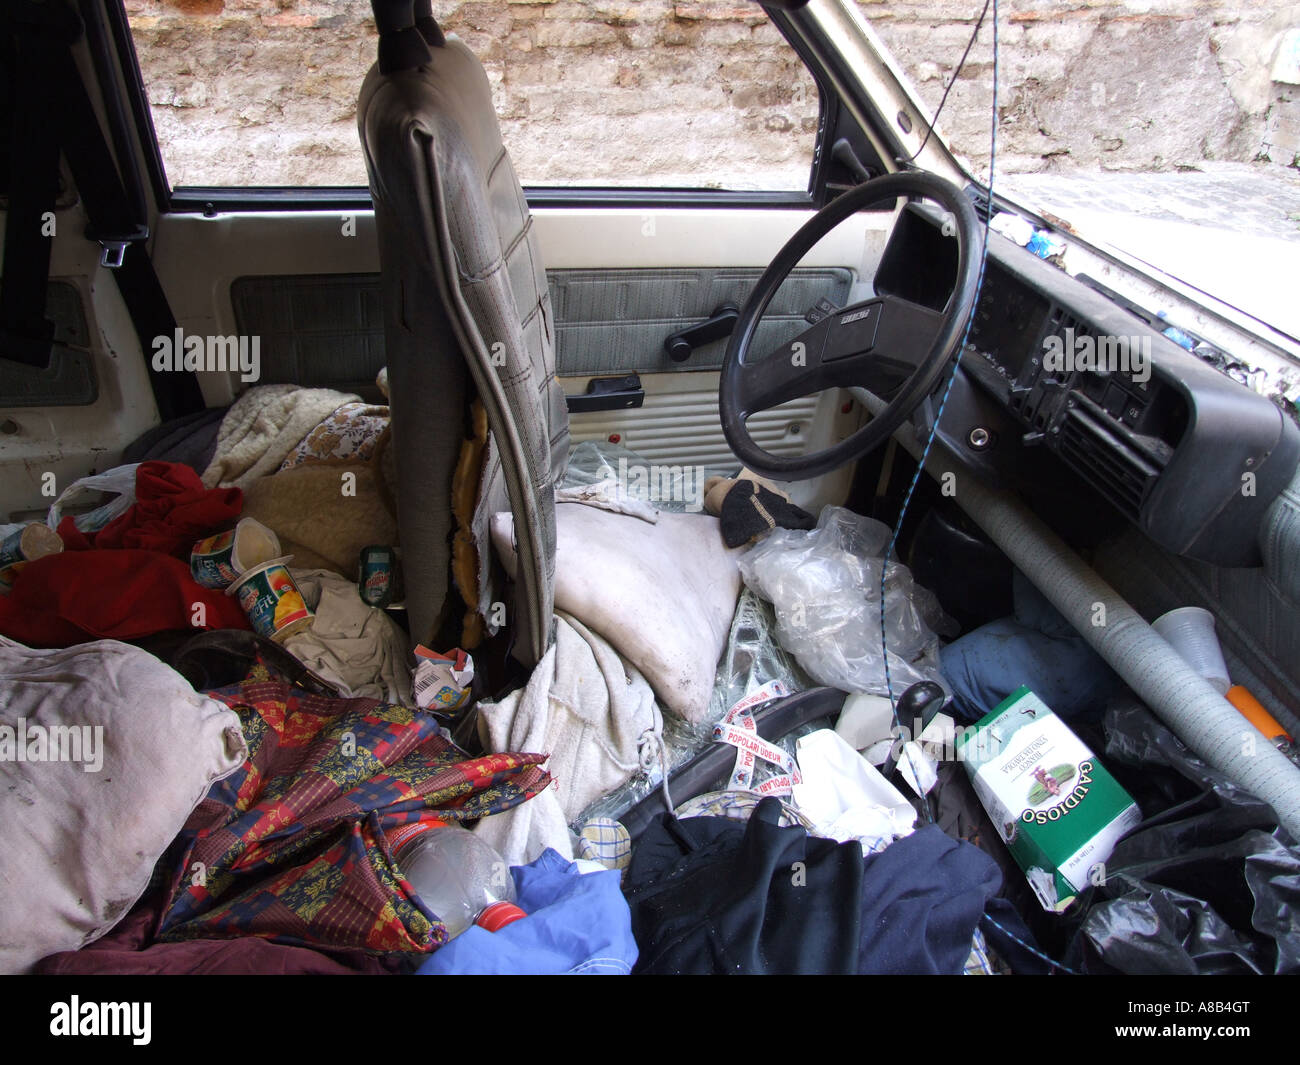 car full of rubbish stock photo 12046919 alamy. Black Bedroom Furniture Sets. Home Design Ideas